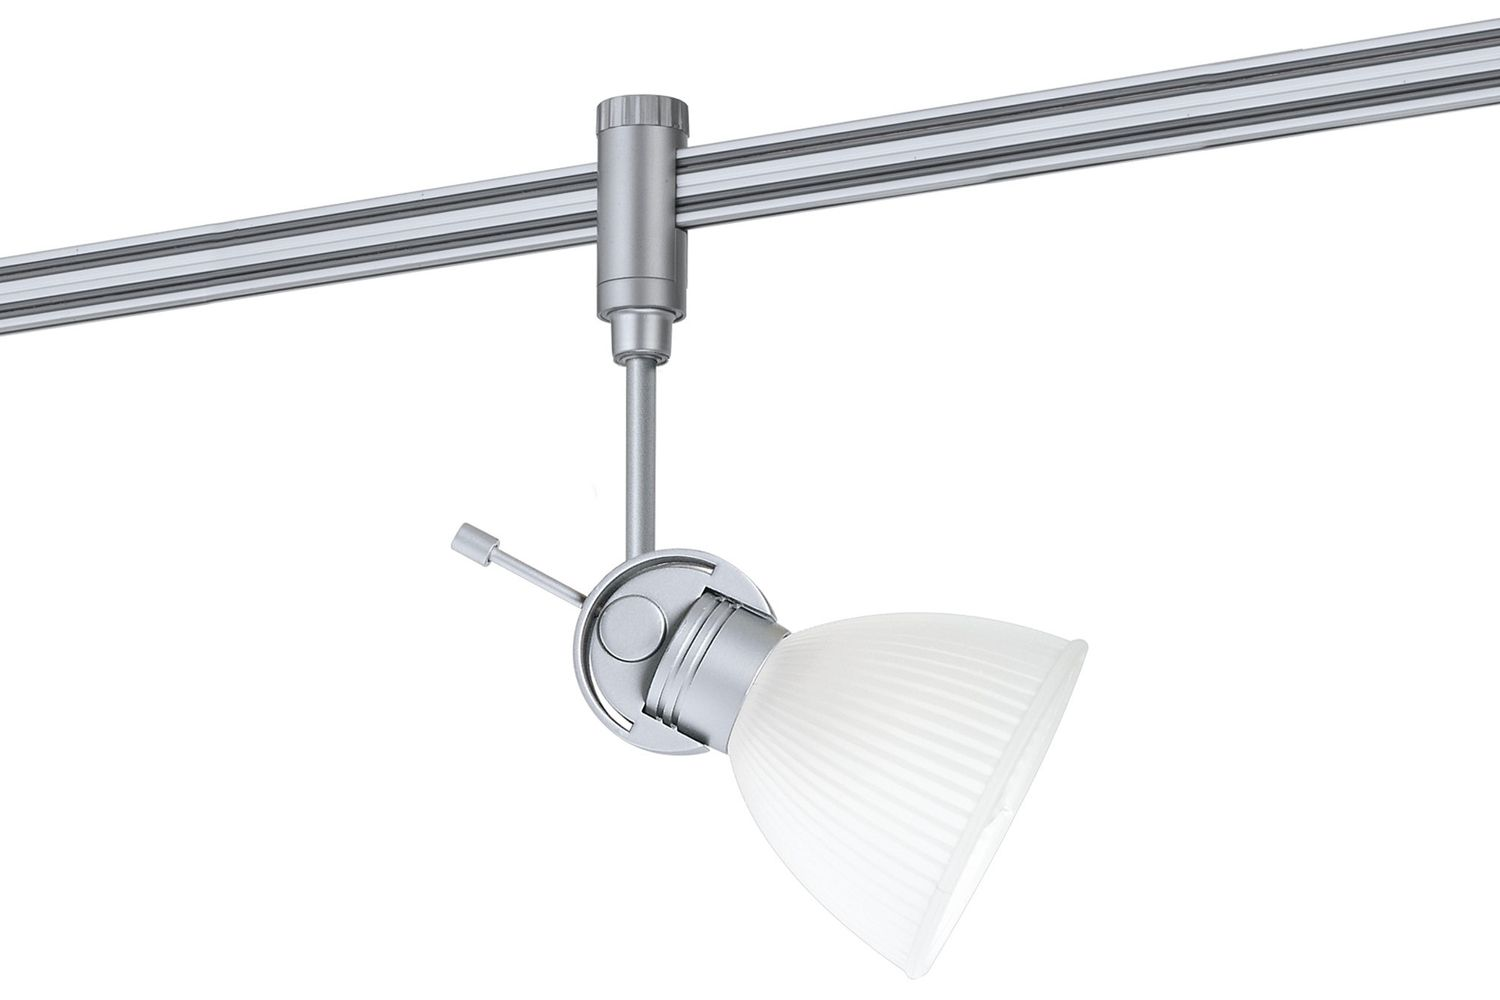 Paulmann Phantom Einzelteile 97335 RS Light&Easy Phantom Spot Phara 1x40W G9 Titan/Satin 230V Metall/Kunststoff/Glas